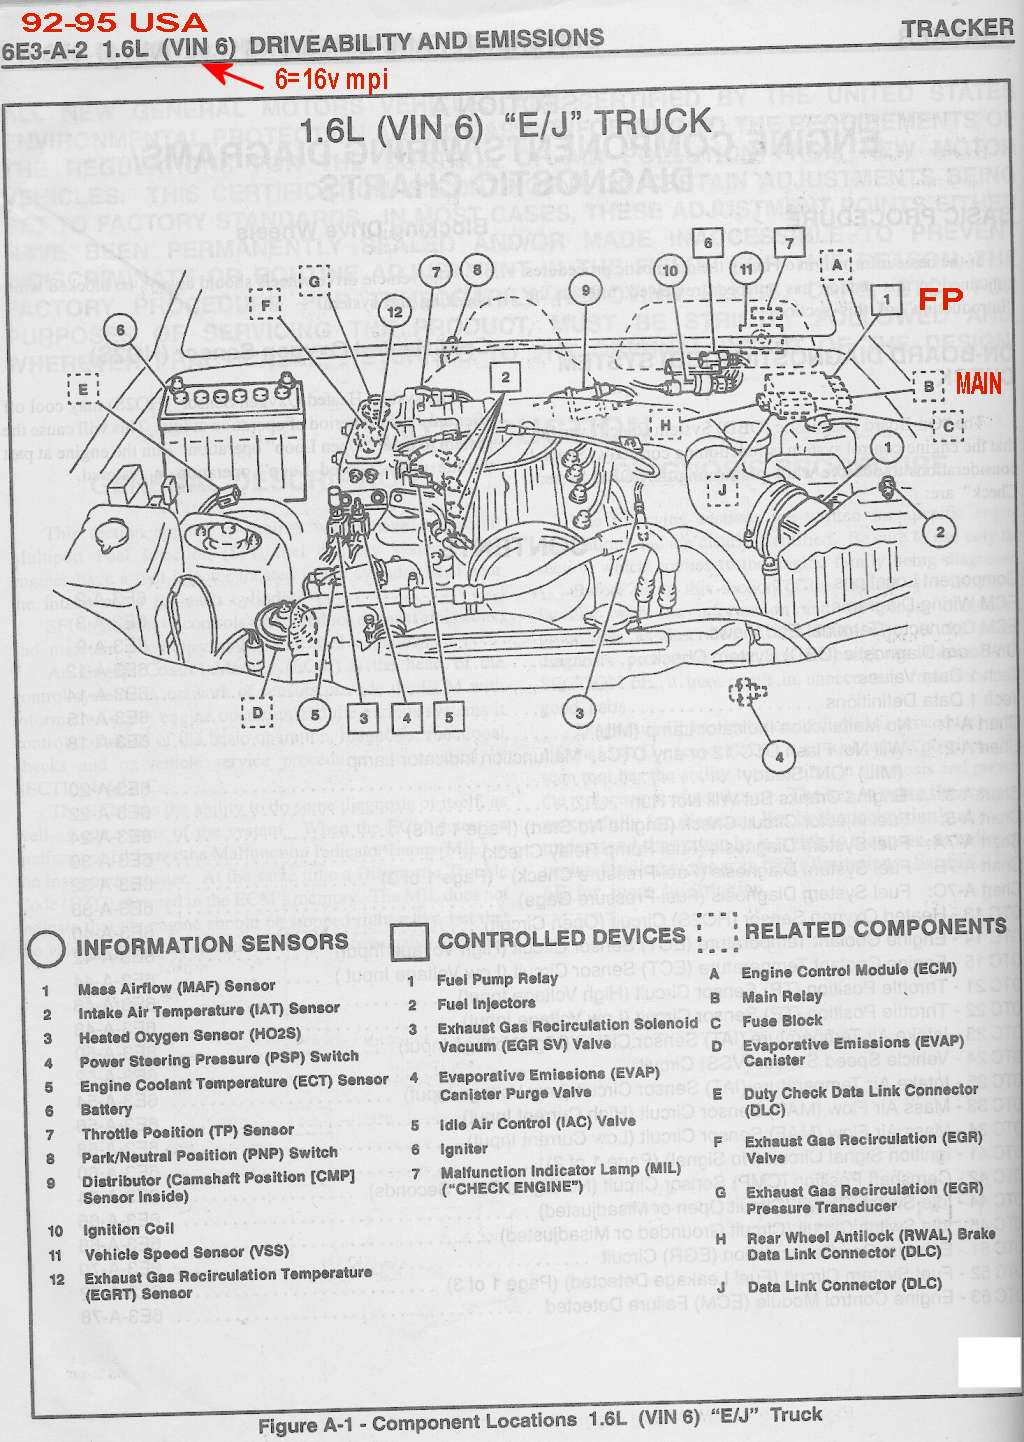 wiring diagram for 92 geo tracker experts of wiring diagram \u2022 geo tracker fuse panel diagram schematics to run engine rh fixkick com 1997 geo tracker wiring diagram 1995 geo tracker